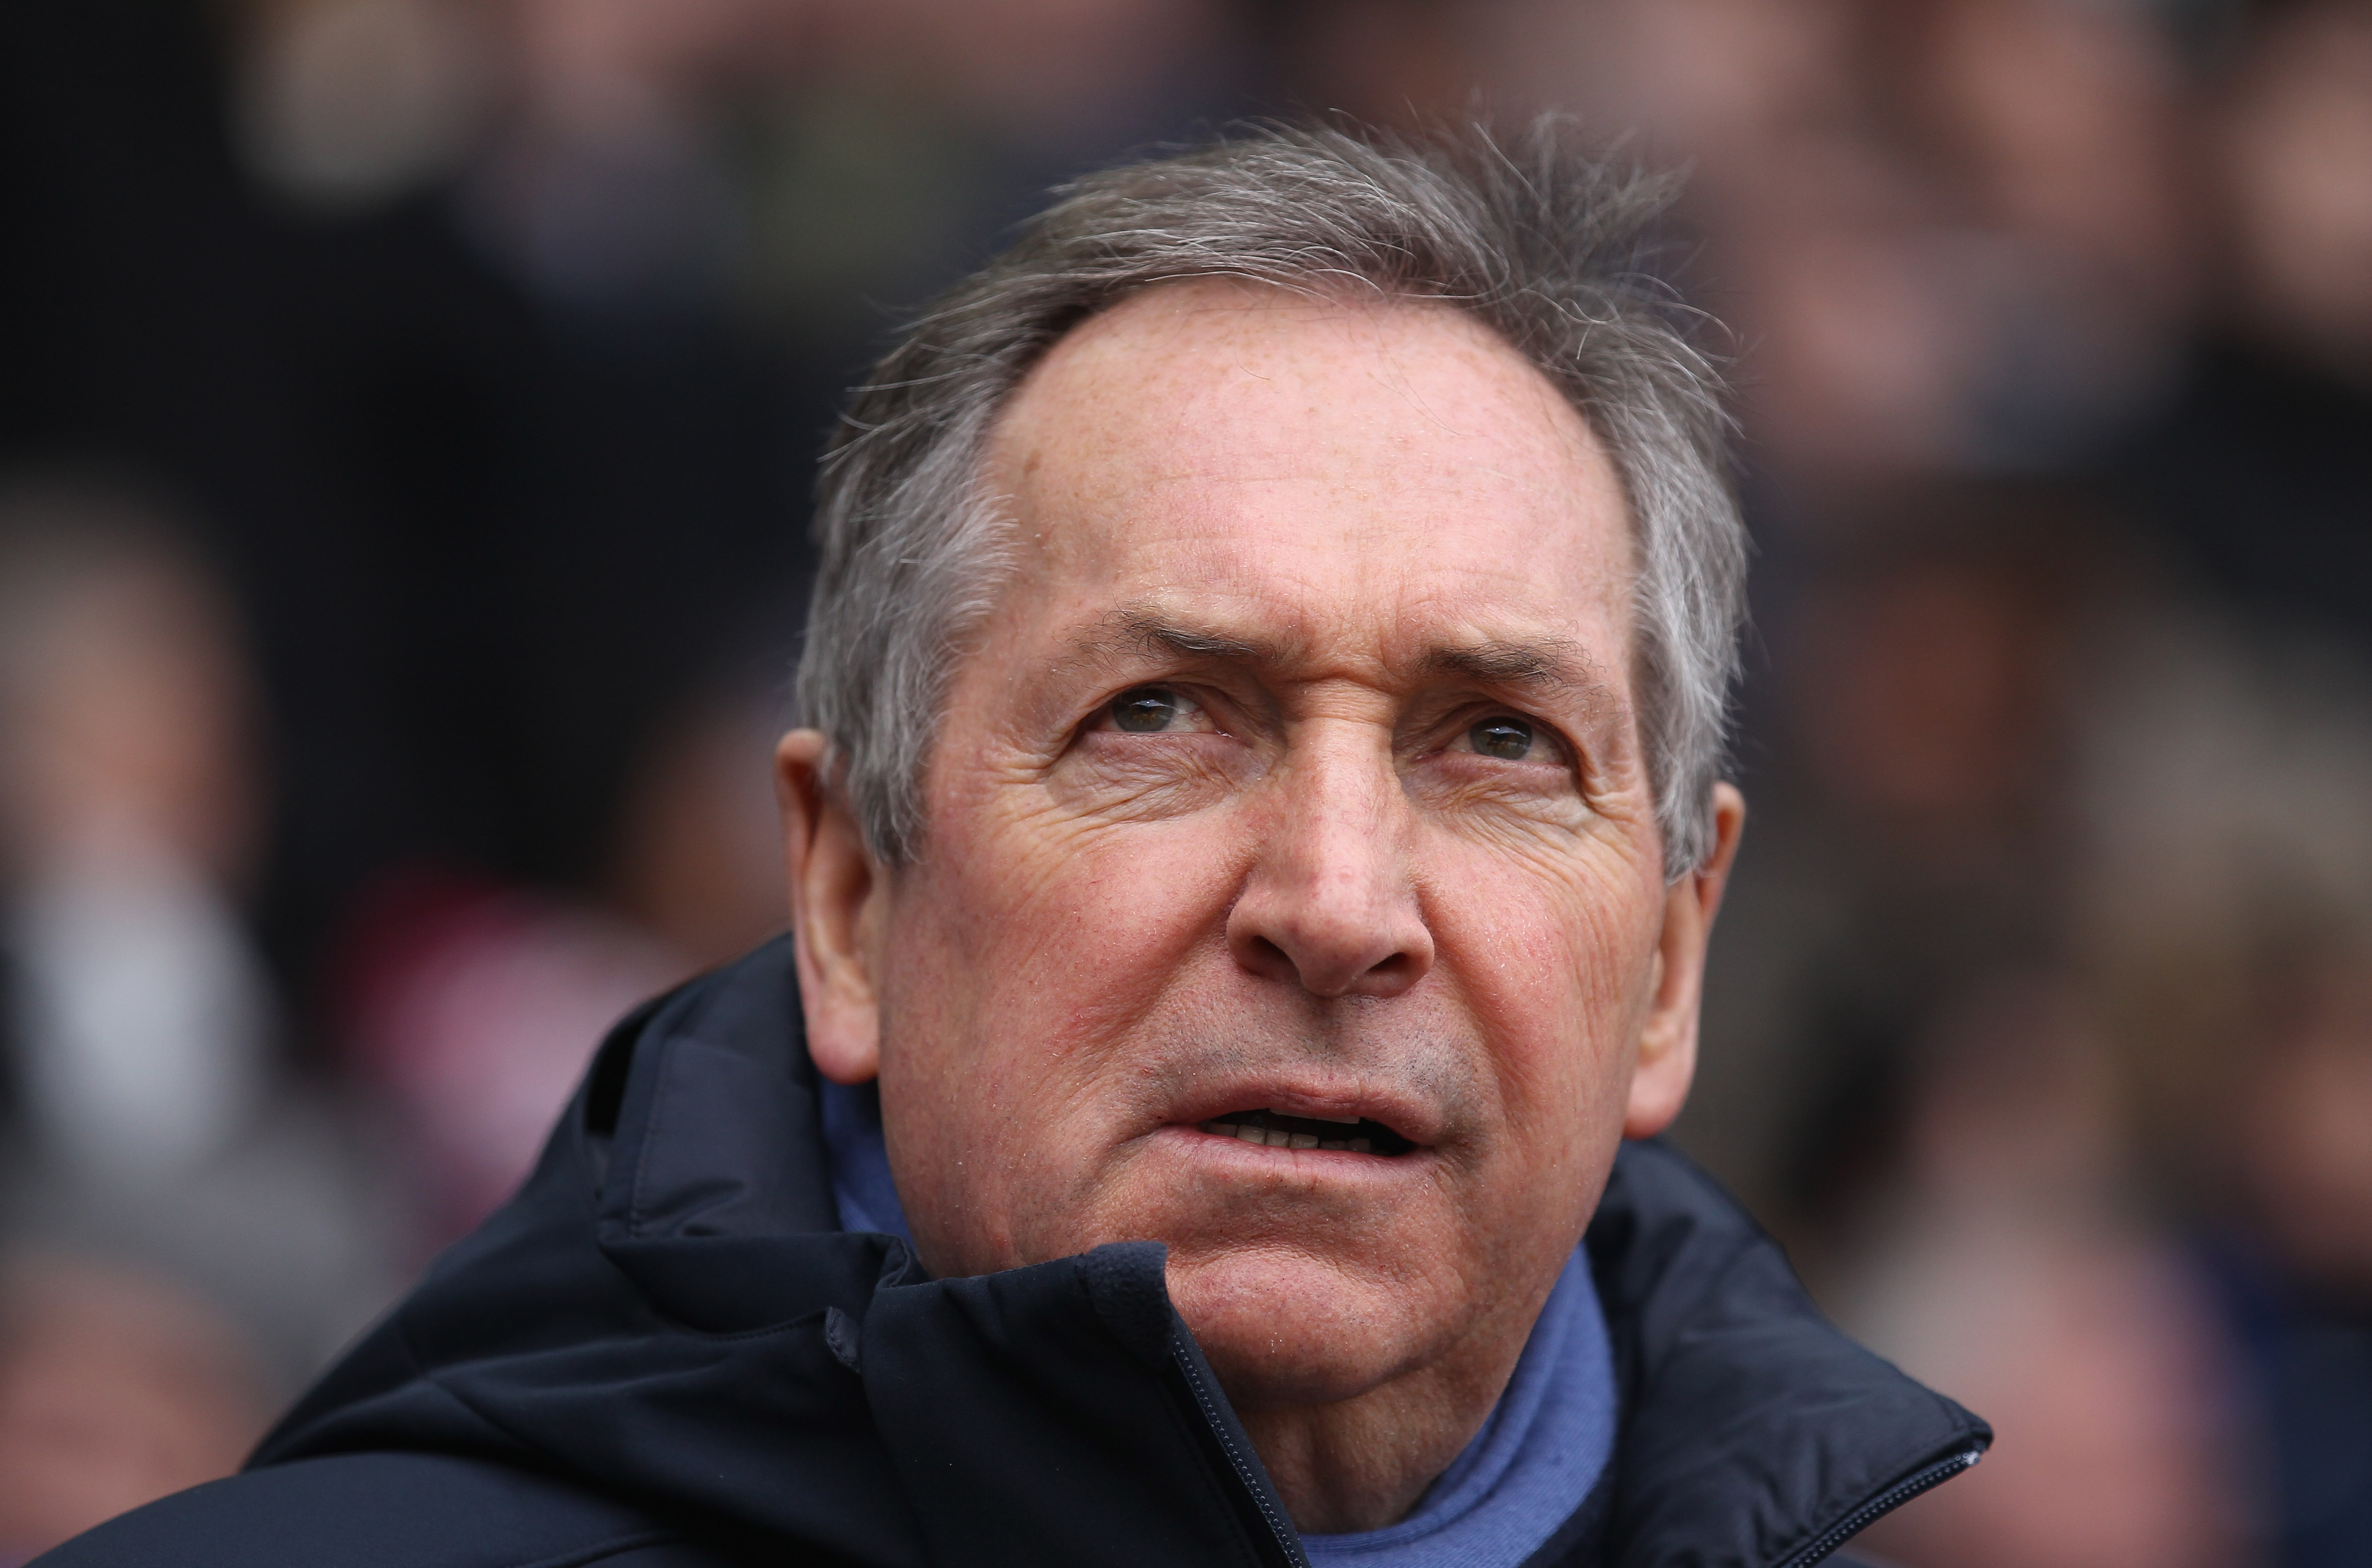 'PSG and Marseille formed an alliance to eliminate Lyon' - Houllier claims Ligue 1 giants influenced French government